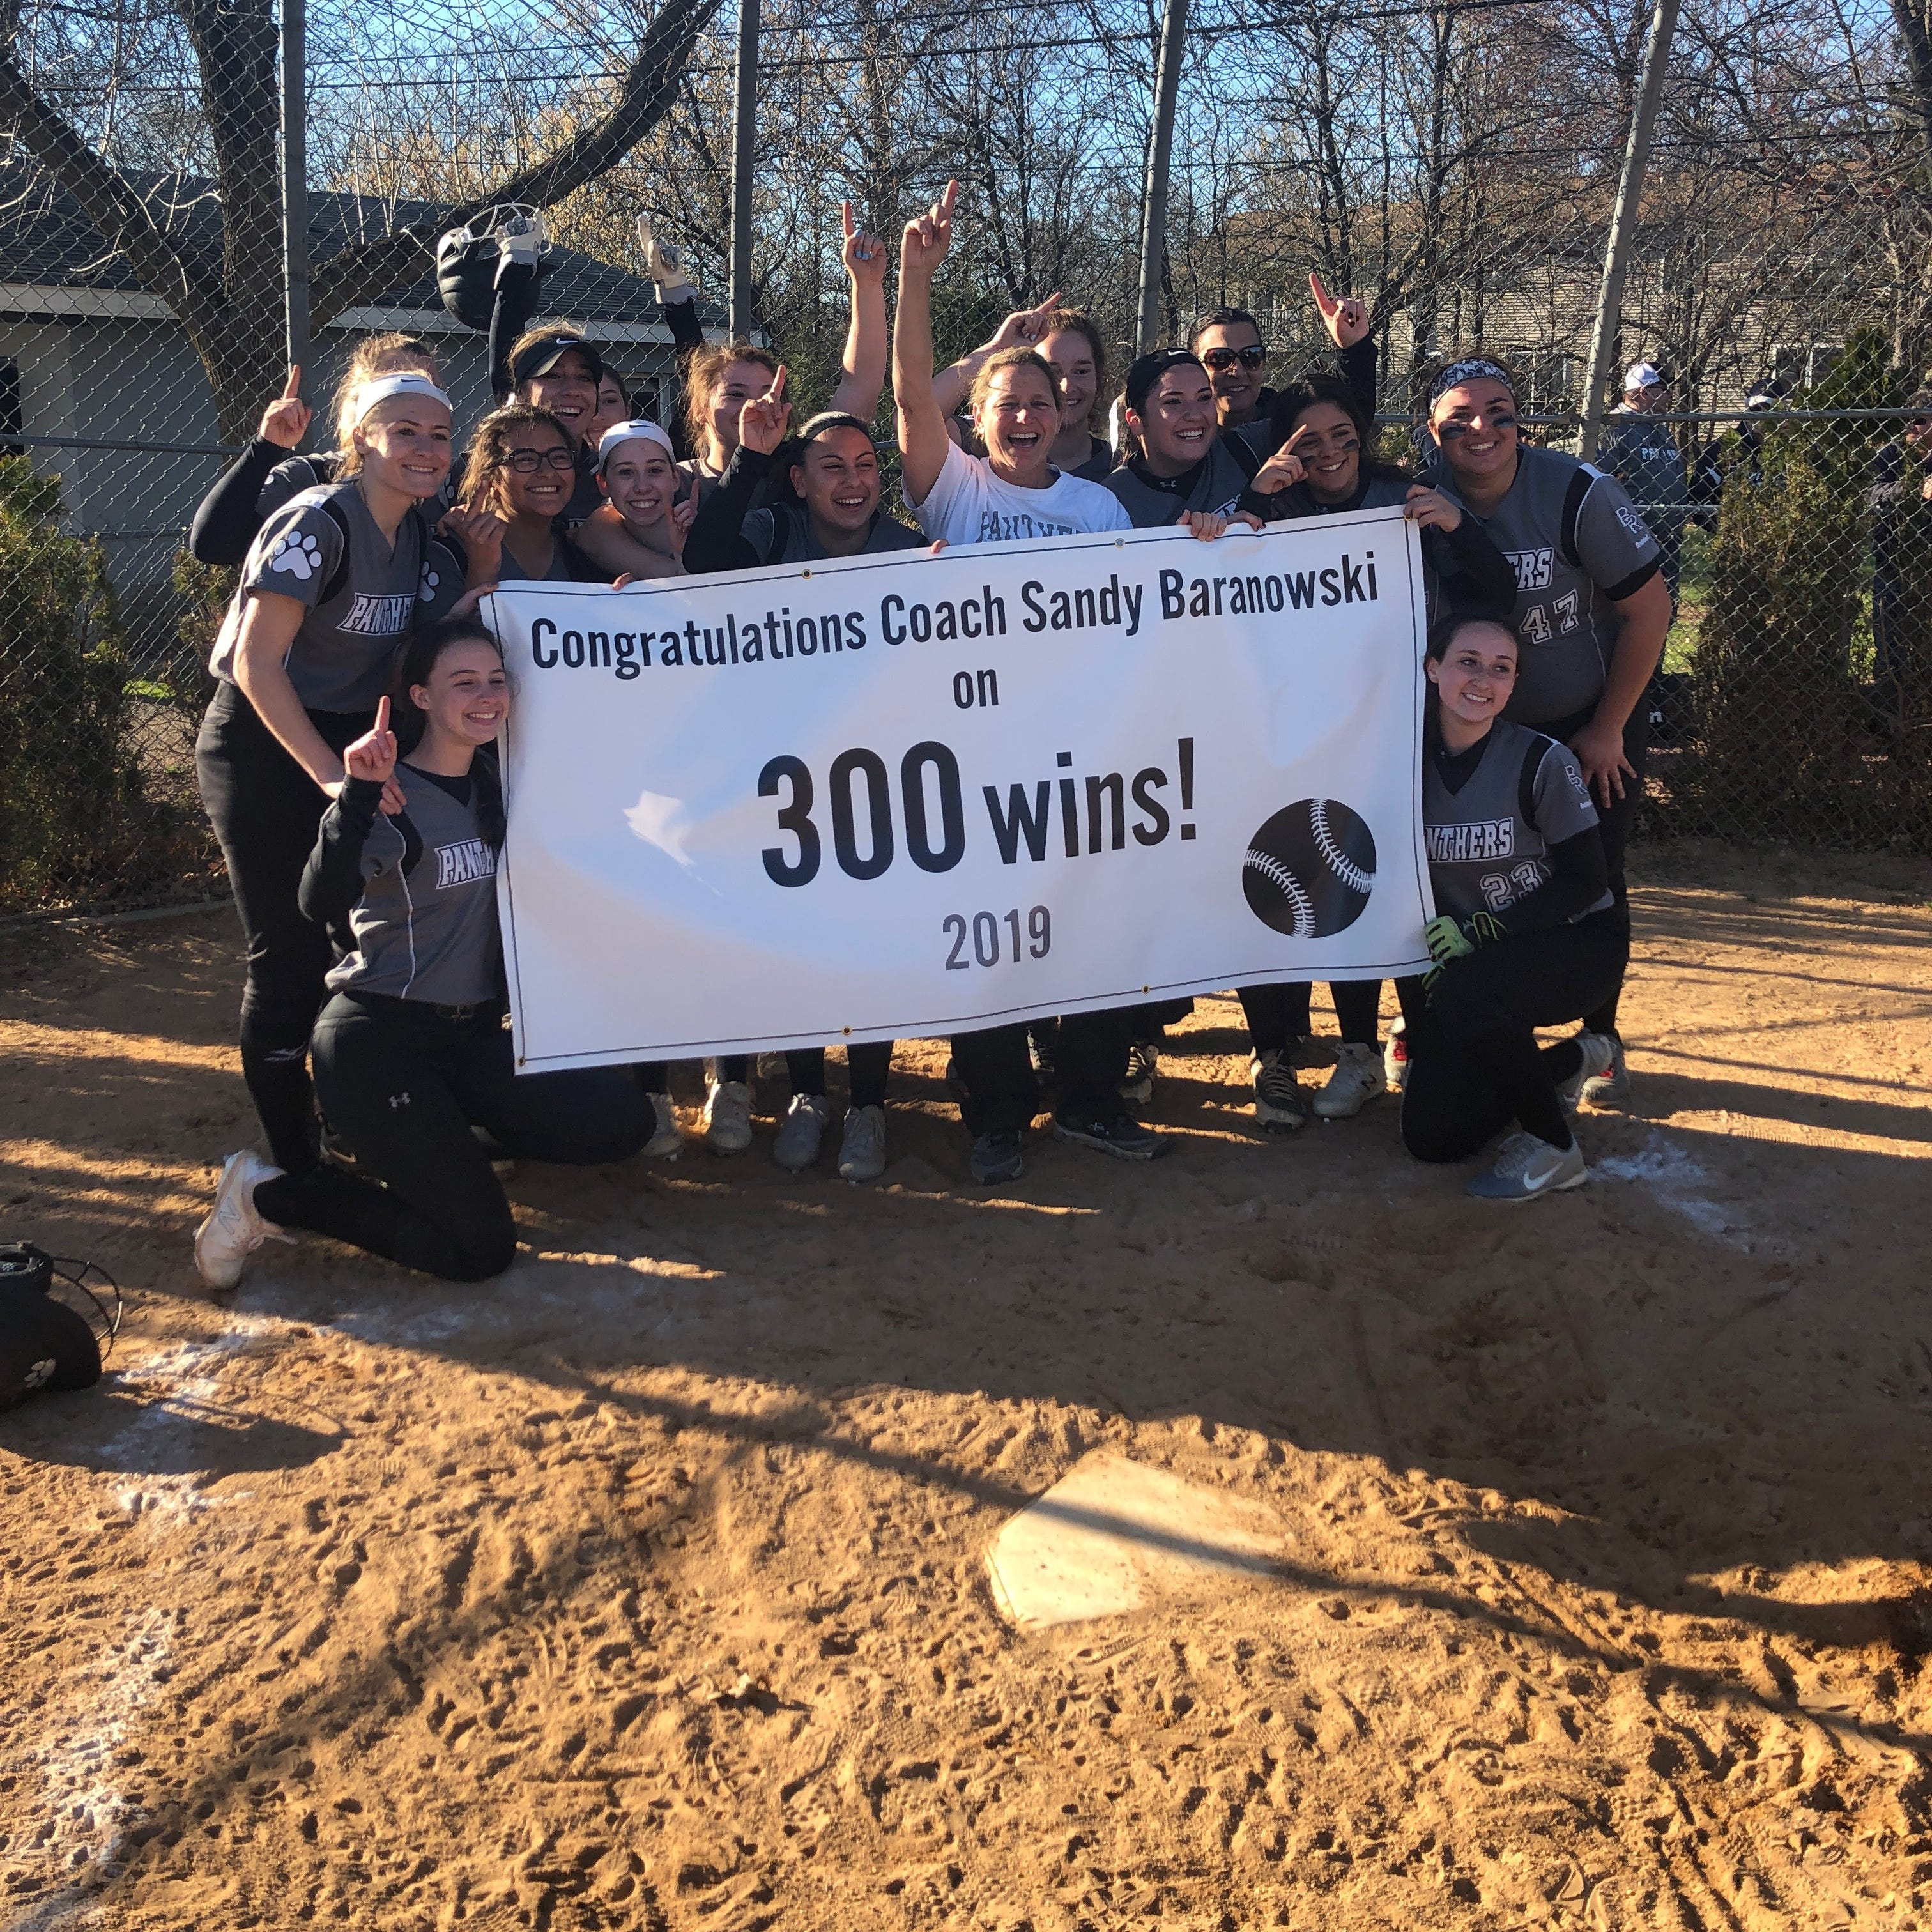 NJ SOFTBALL roundup with analysis: Bridgewater-Raritan walks off Ridge for milestone victory